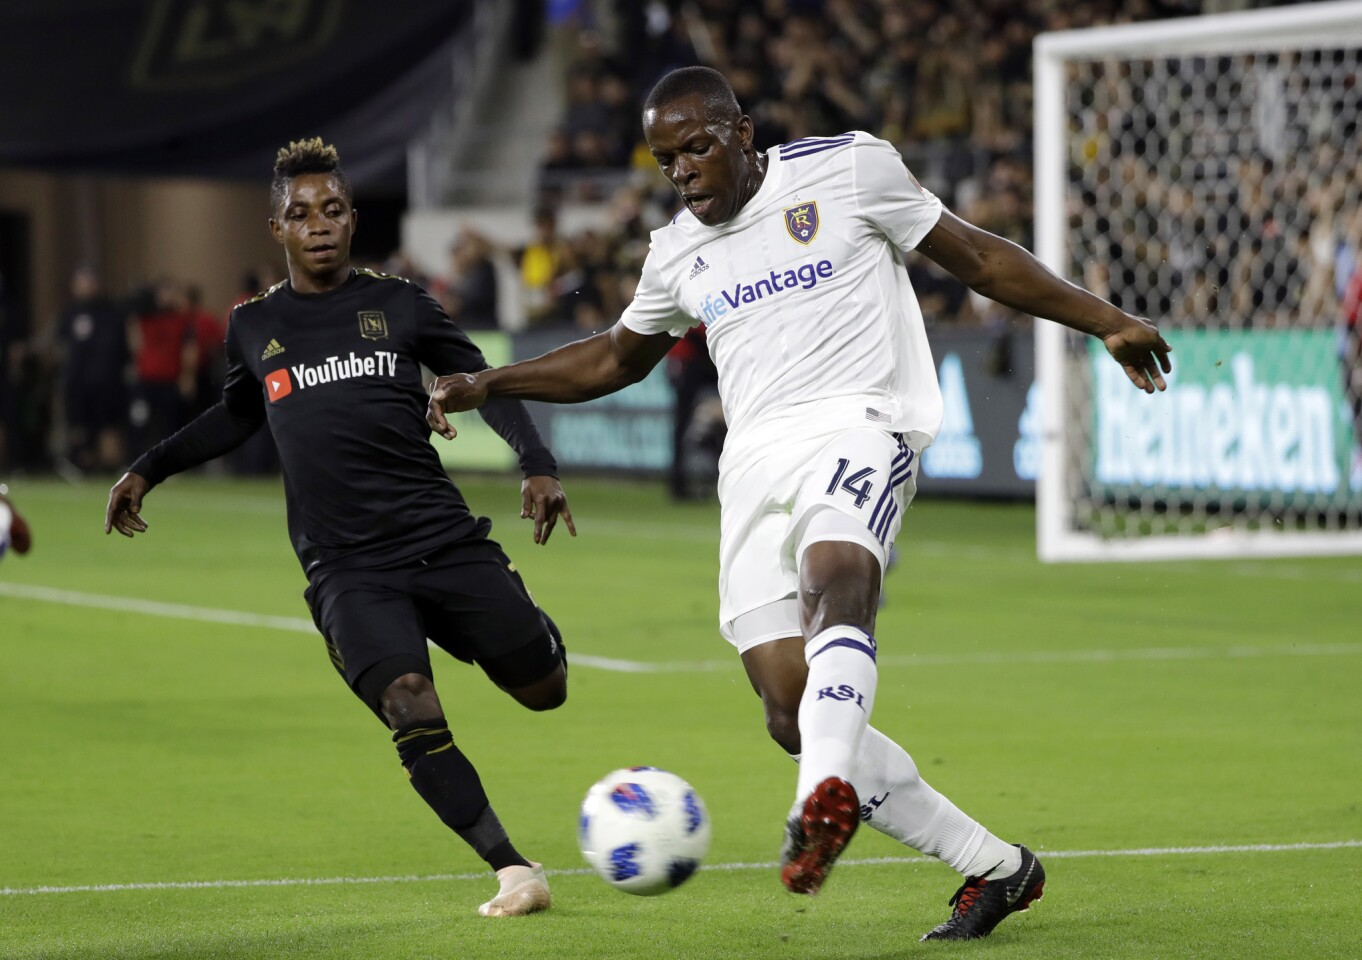 Real Salt Lake's Nedum Onuoha, right, clears the ball as Los Angeles FC's Latif Blessing closes in during the first half of an MLS soccer playoff match Thursday, Nov. 1, 2018, in Los Angeles. (AP Photo/Marcio Jose Sanchez)